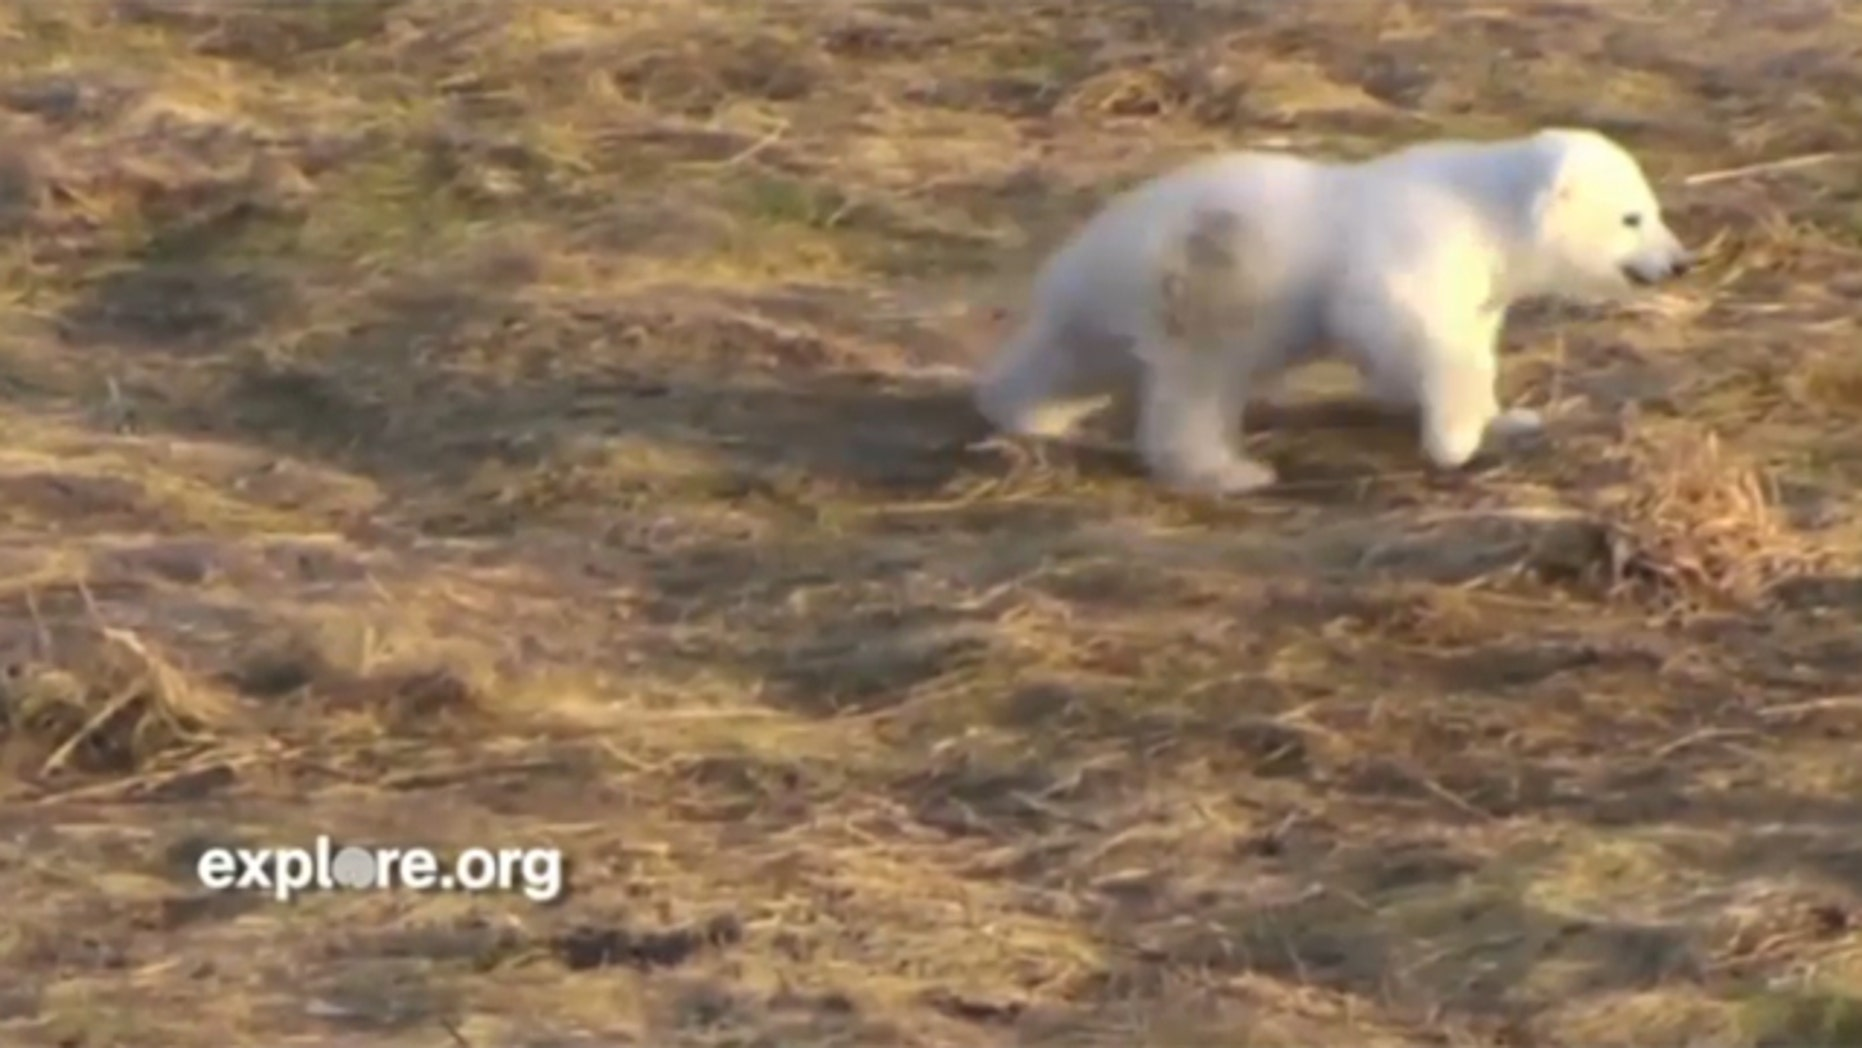 In this screenshot from Explore.org's live web cam, Siku, a baby polar bear, plays at the Scandinavian Wildlife Park in Kolind, Denmark.